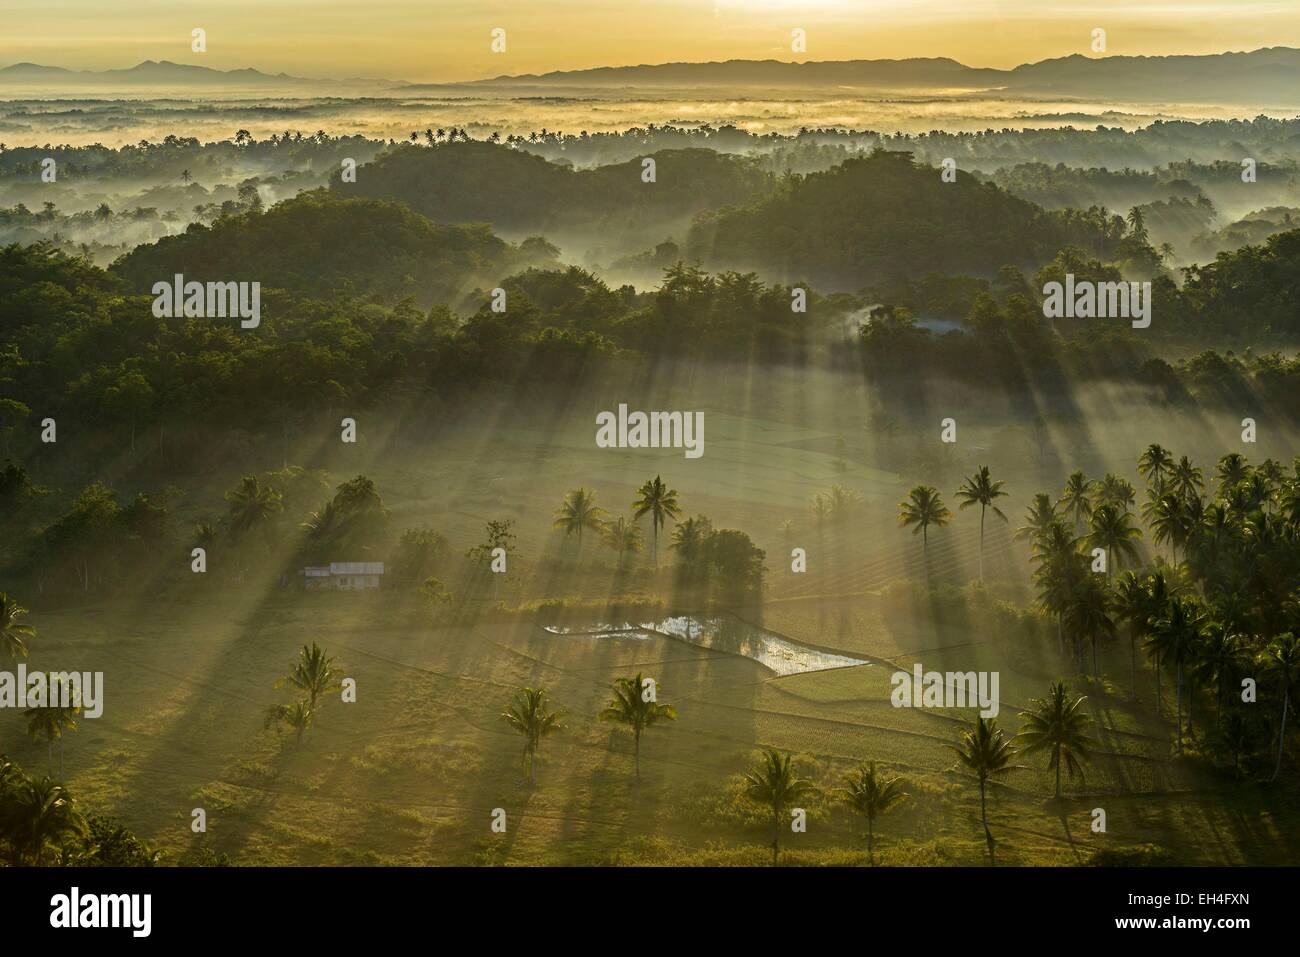 Philippines, Visayas archipelago, Bohol island, Carmen area, paddy field in the Chocolate Hills at sunrise - Stock Image